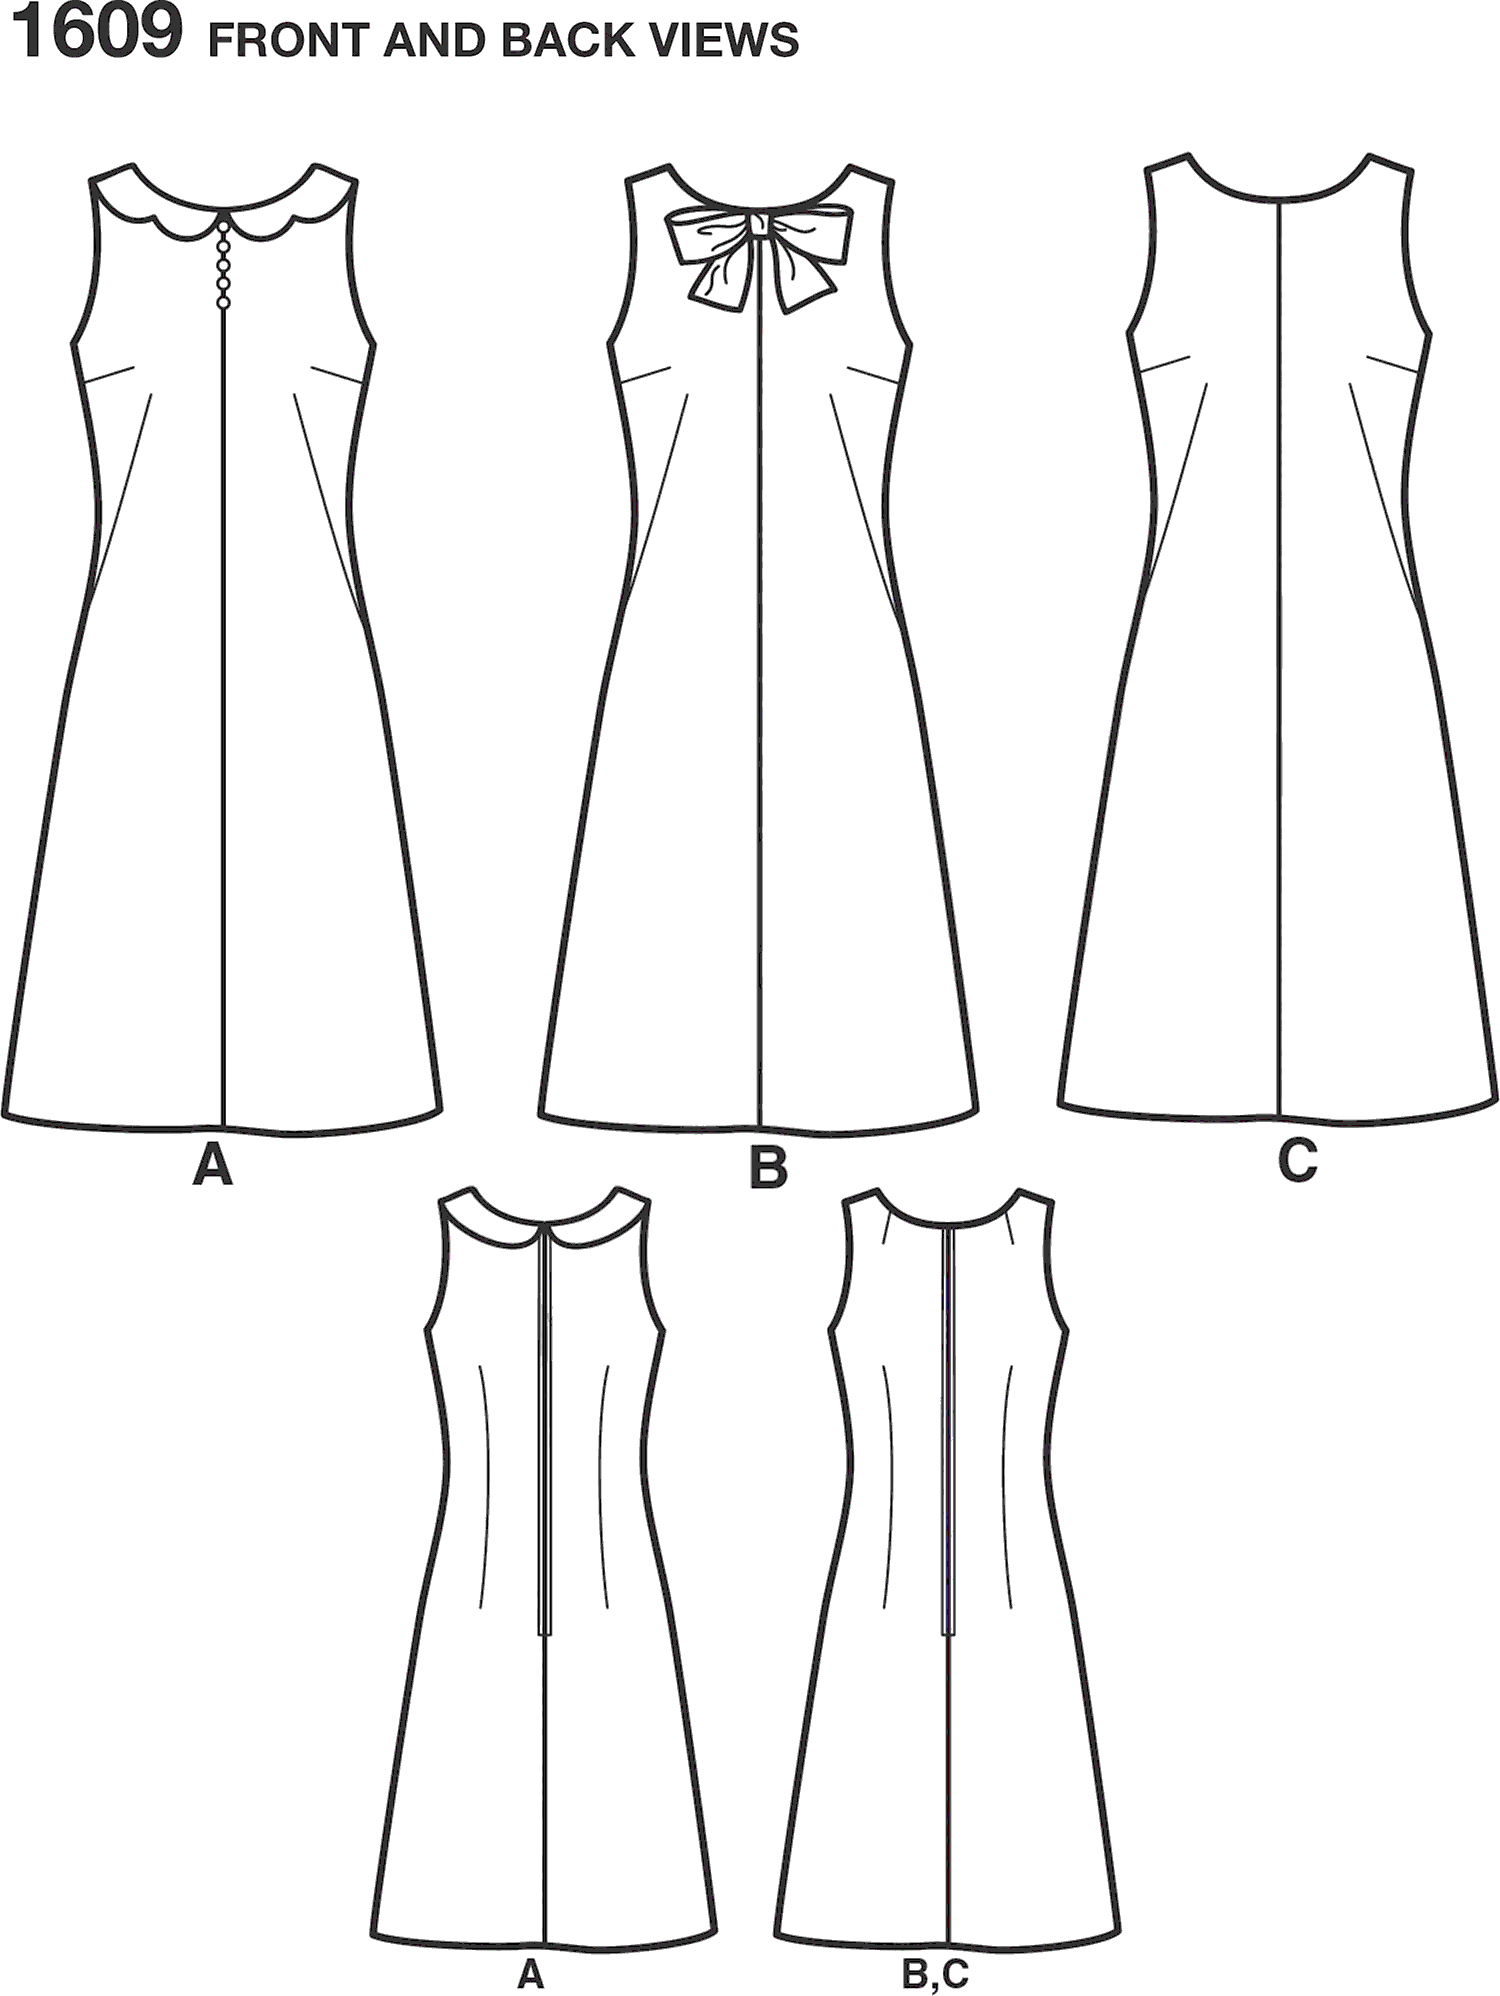 Simplicity Pattern 1609 Womens Jiffy 1960s Vintage Dress Line Art From Patternsandplains.com